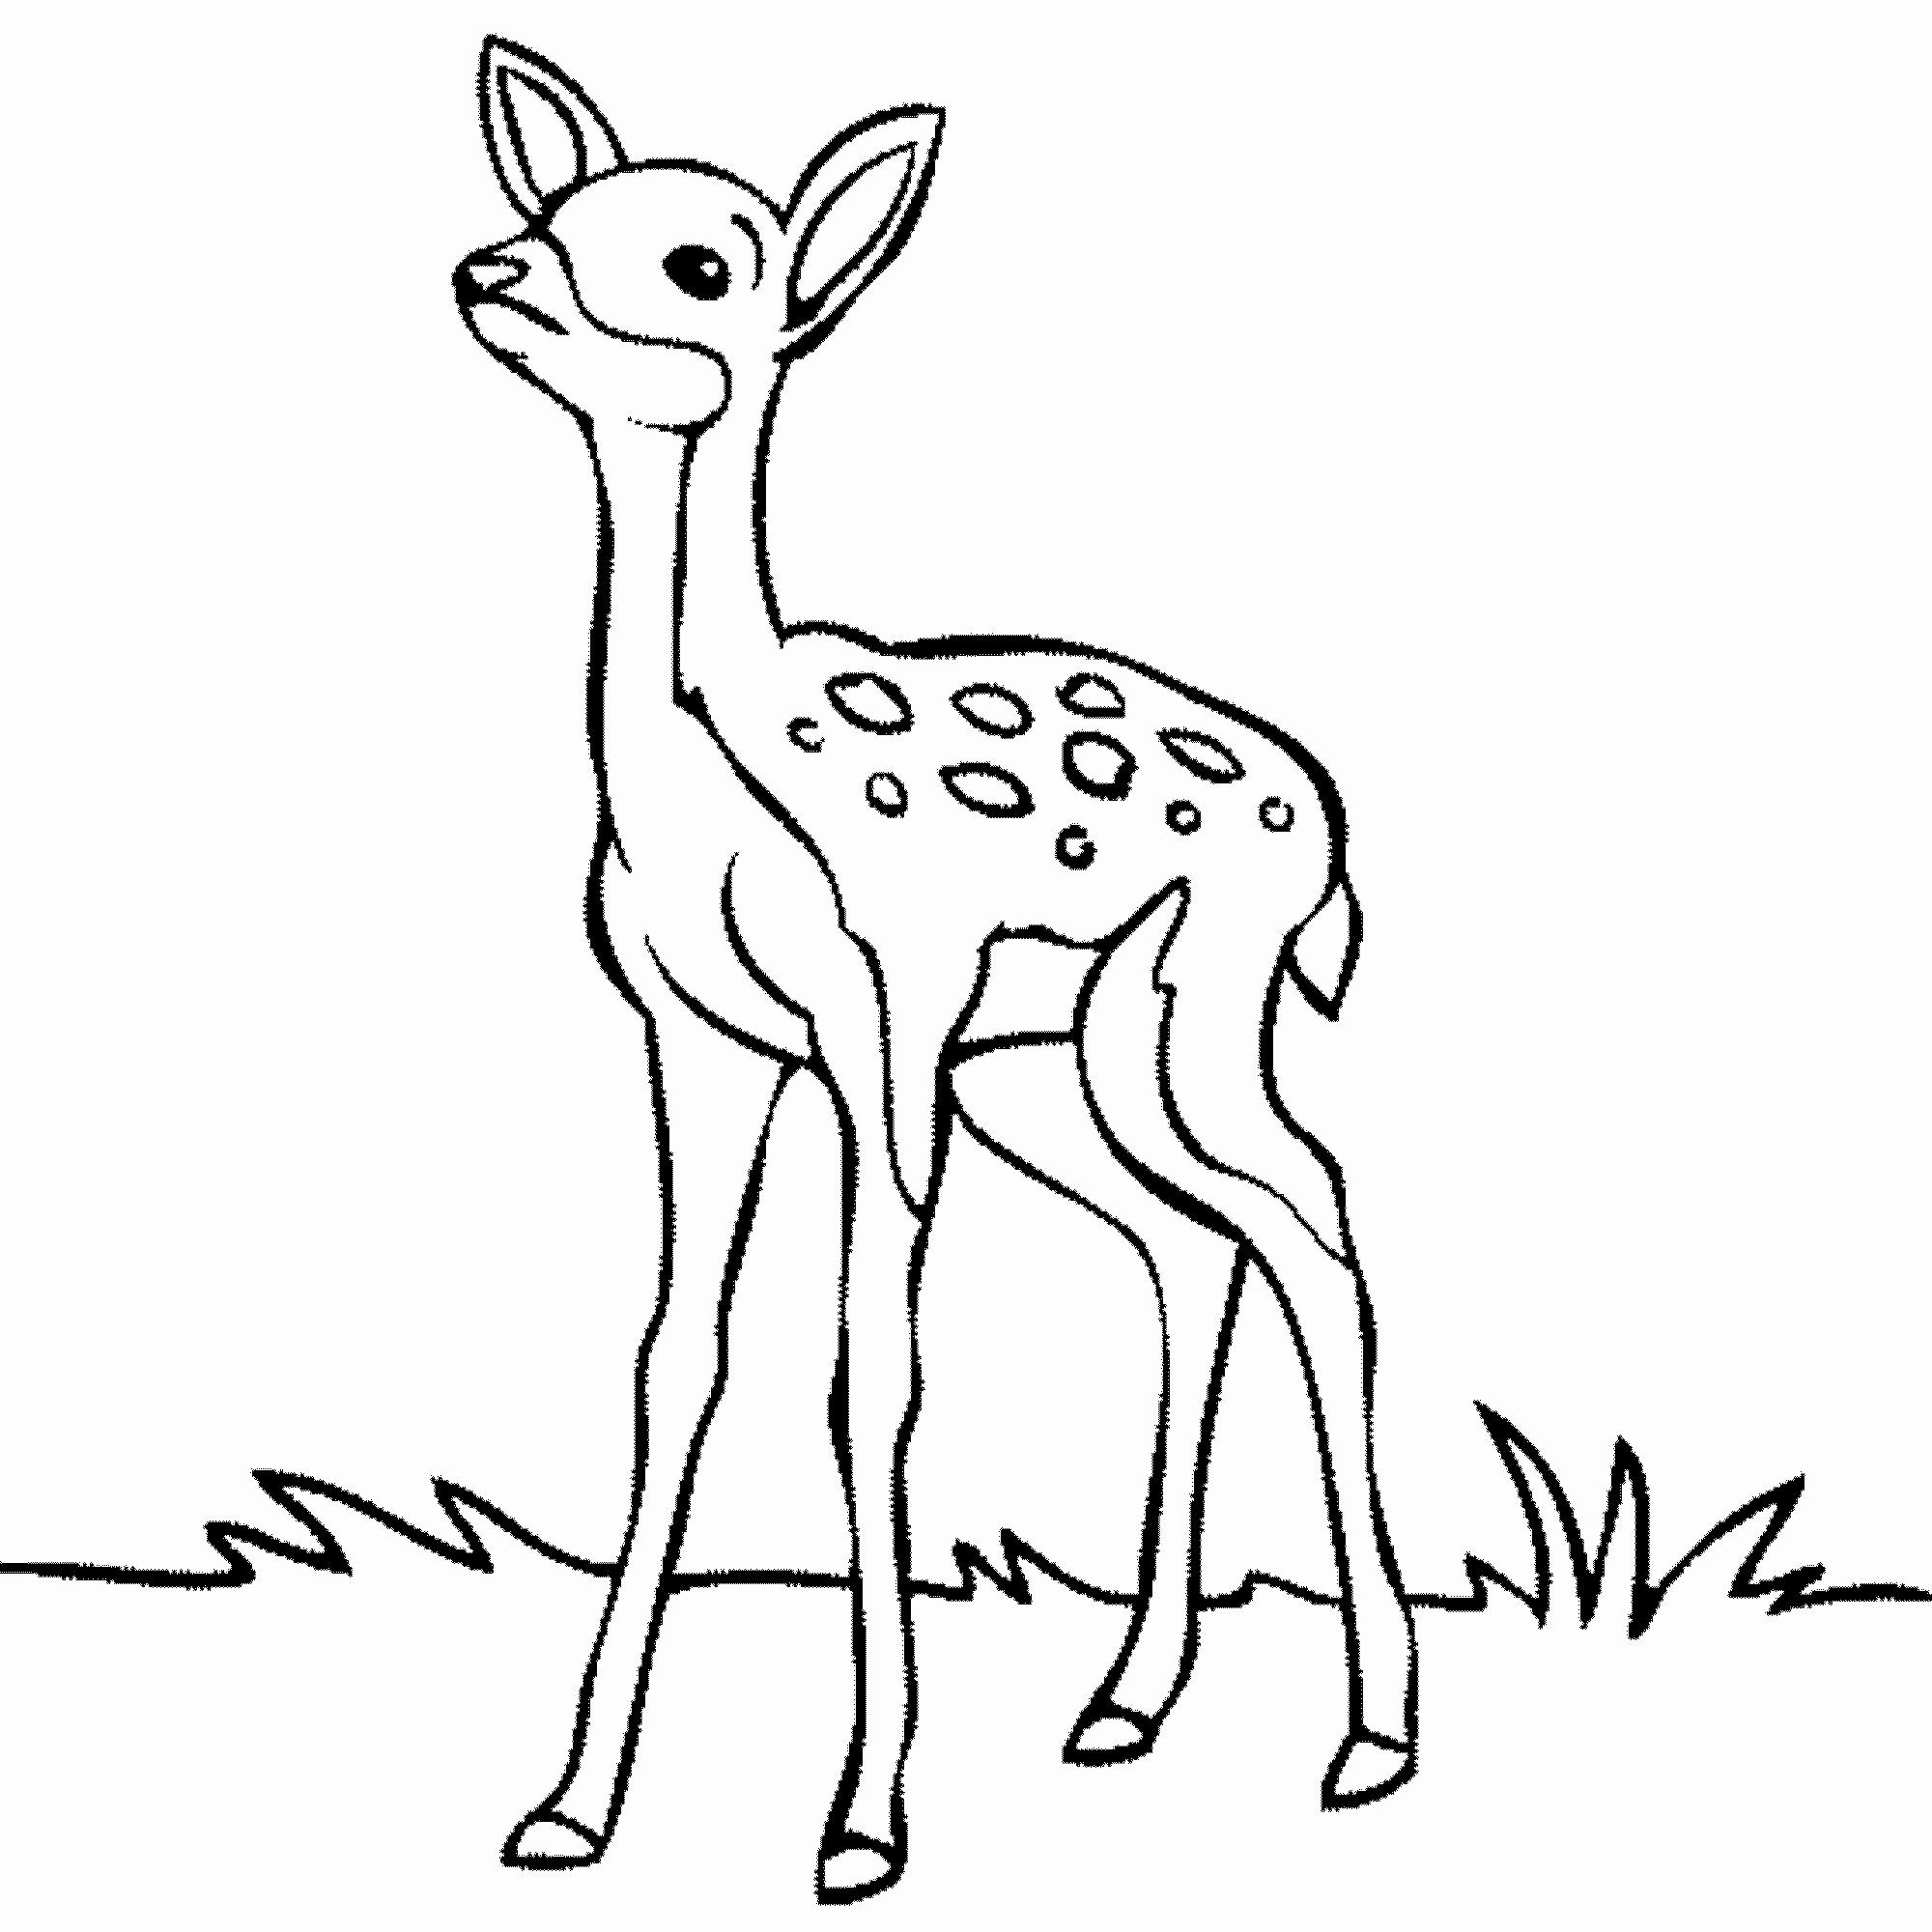 Coloring Pages Rainforest Animals Beautiful Coloring Pages And Books 65 Extraordinary Forest Ani Animal Coloring Pages Deer Coloring Pages Baby Animal Drawings